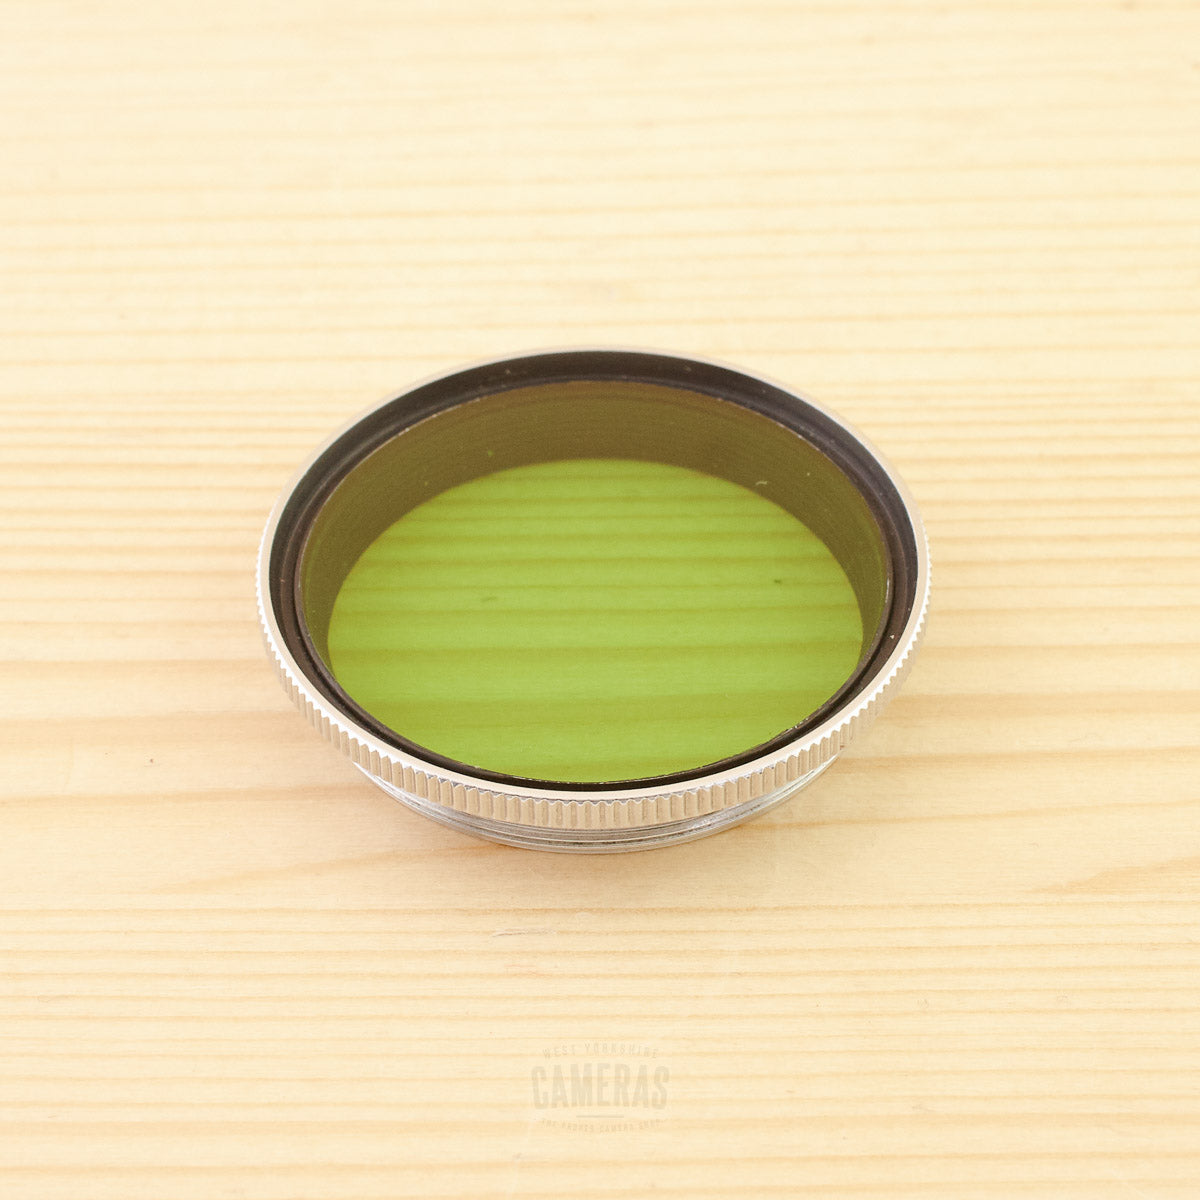 Leica GCYOO Green Filter Exc